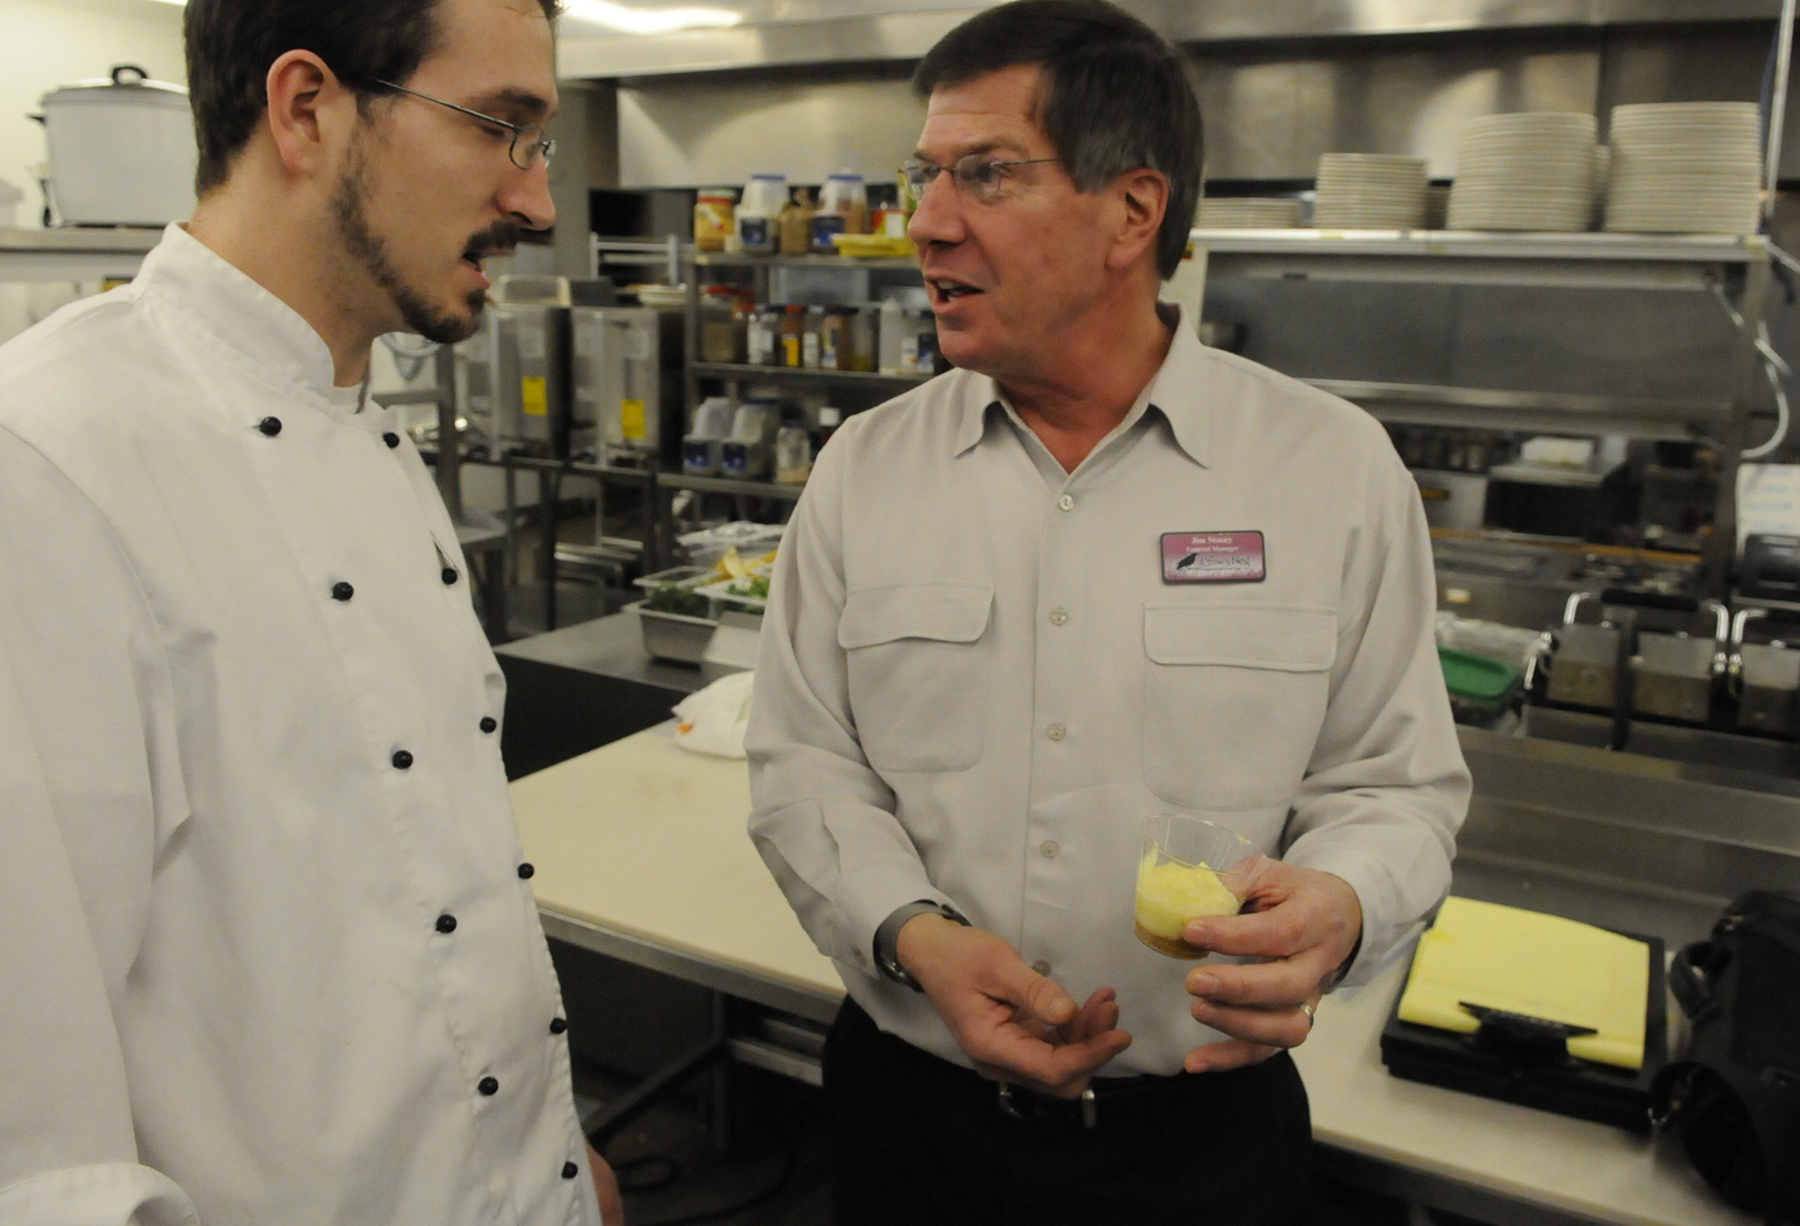 Jim Stacey, right, general manager of the Crow's Nest Restaurant and Event Center in Presque Isle,  confers with his executive chef,  Joseph Gervais, of Caribou in the restaurant's kitchen Wednesday afternoon, Jan. 26, 2011. With the World Cup Biathlon tour coming to Presque Isle February 4-6 and to Fort Kent February 10-13, area businesses like The Crow's Nest, many of which are working and volunteering at both venues, expect to benefit.